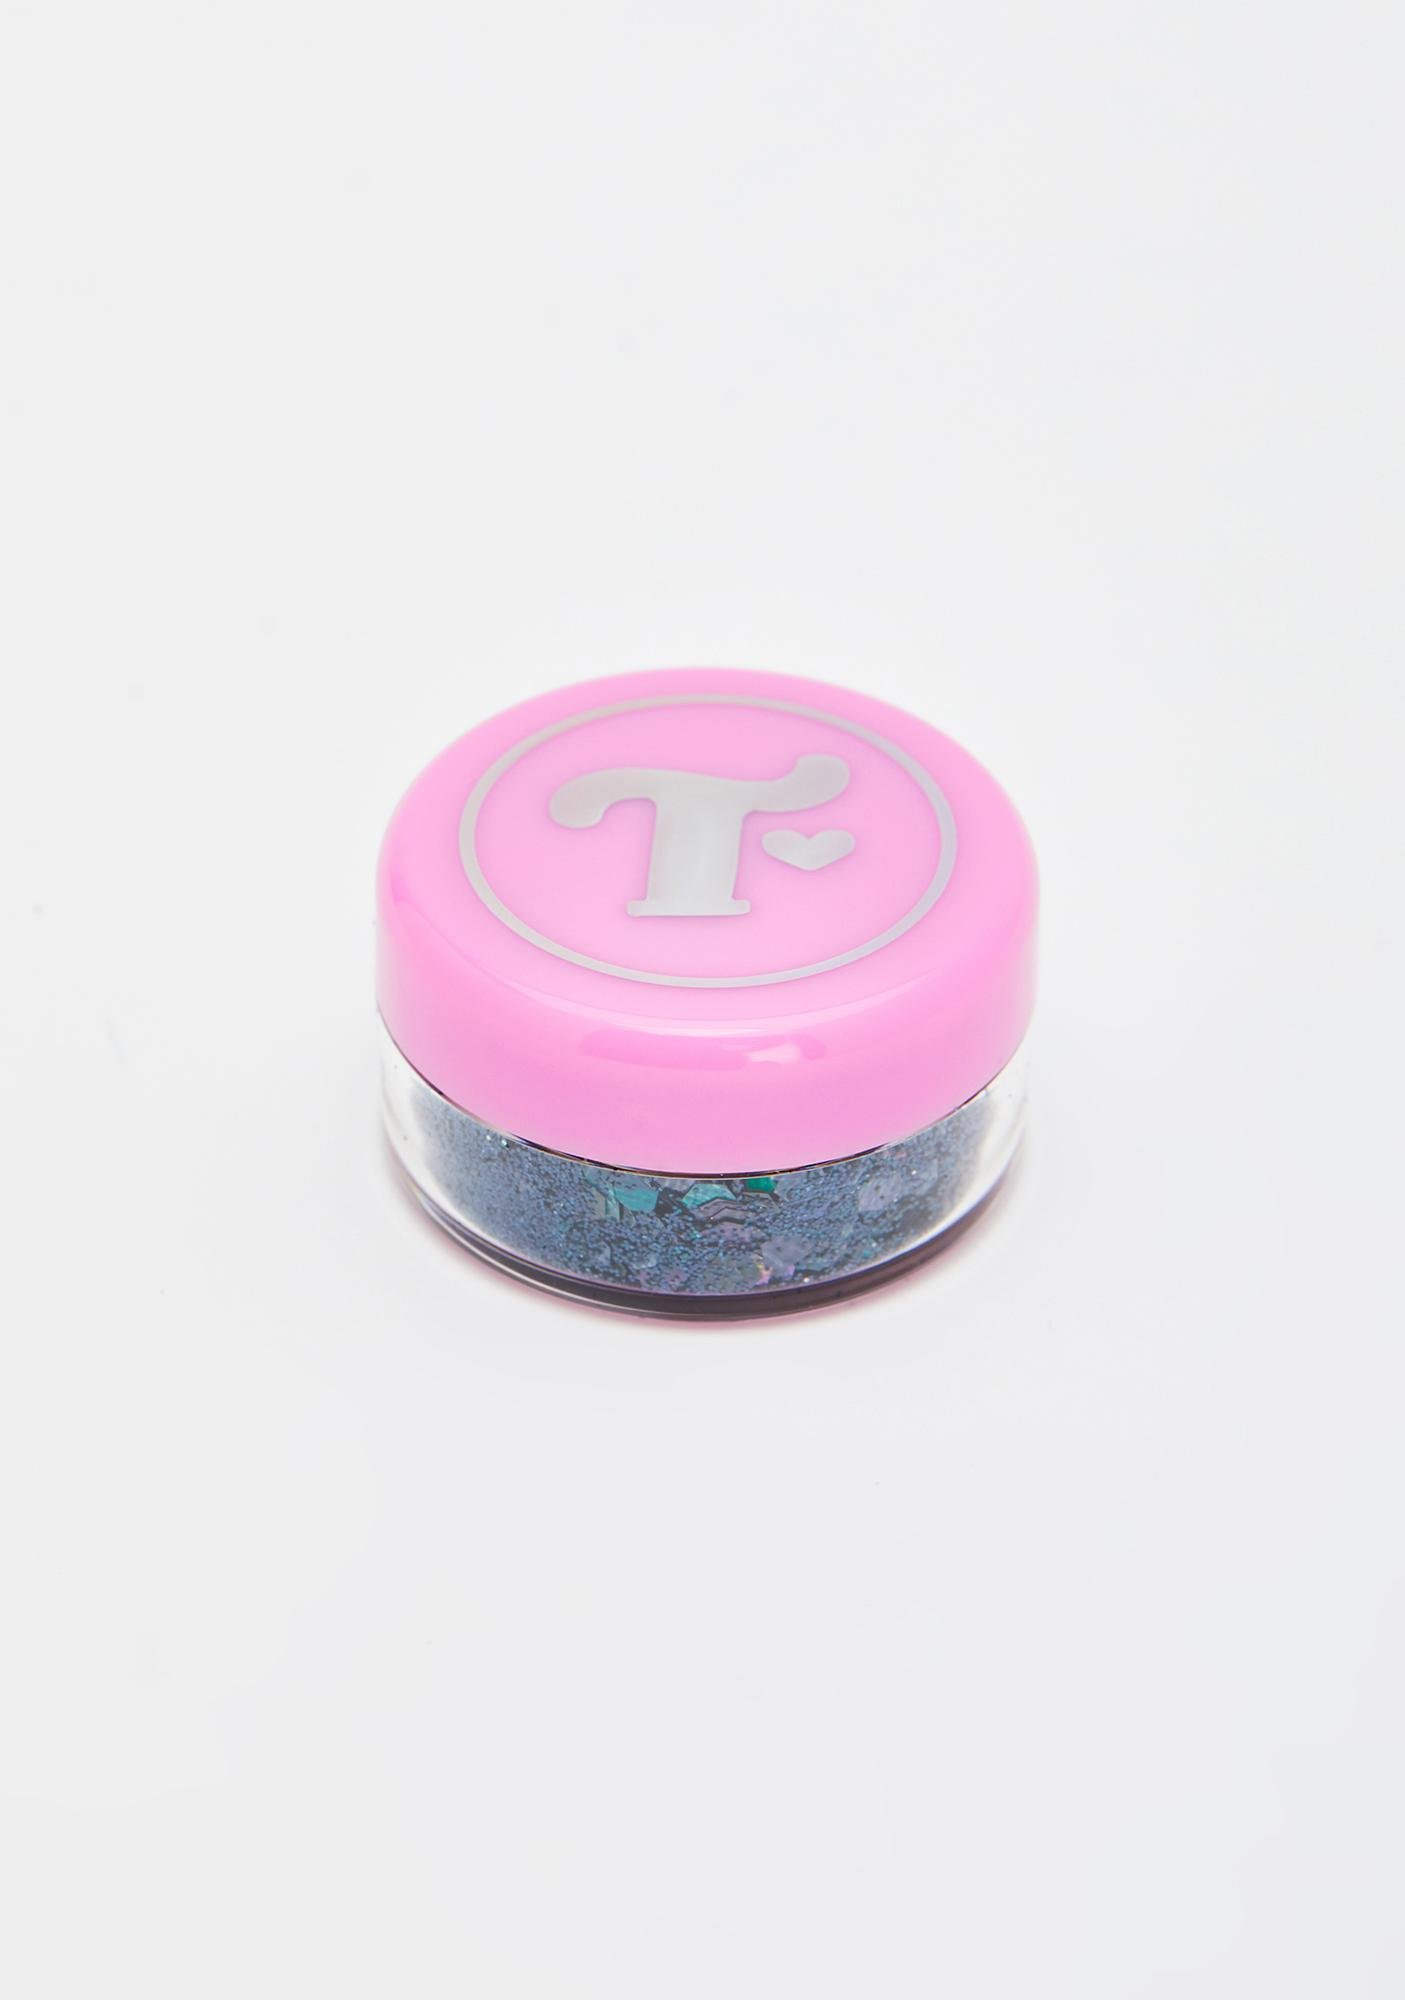 Trixie Cosmetics Oooky Spooky Sprinkles Loose Glitter